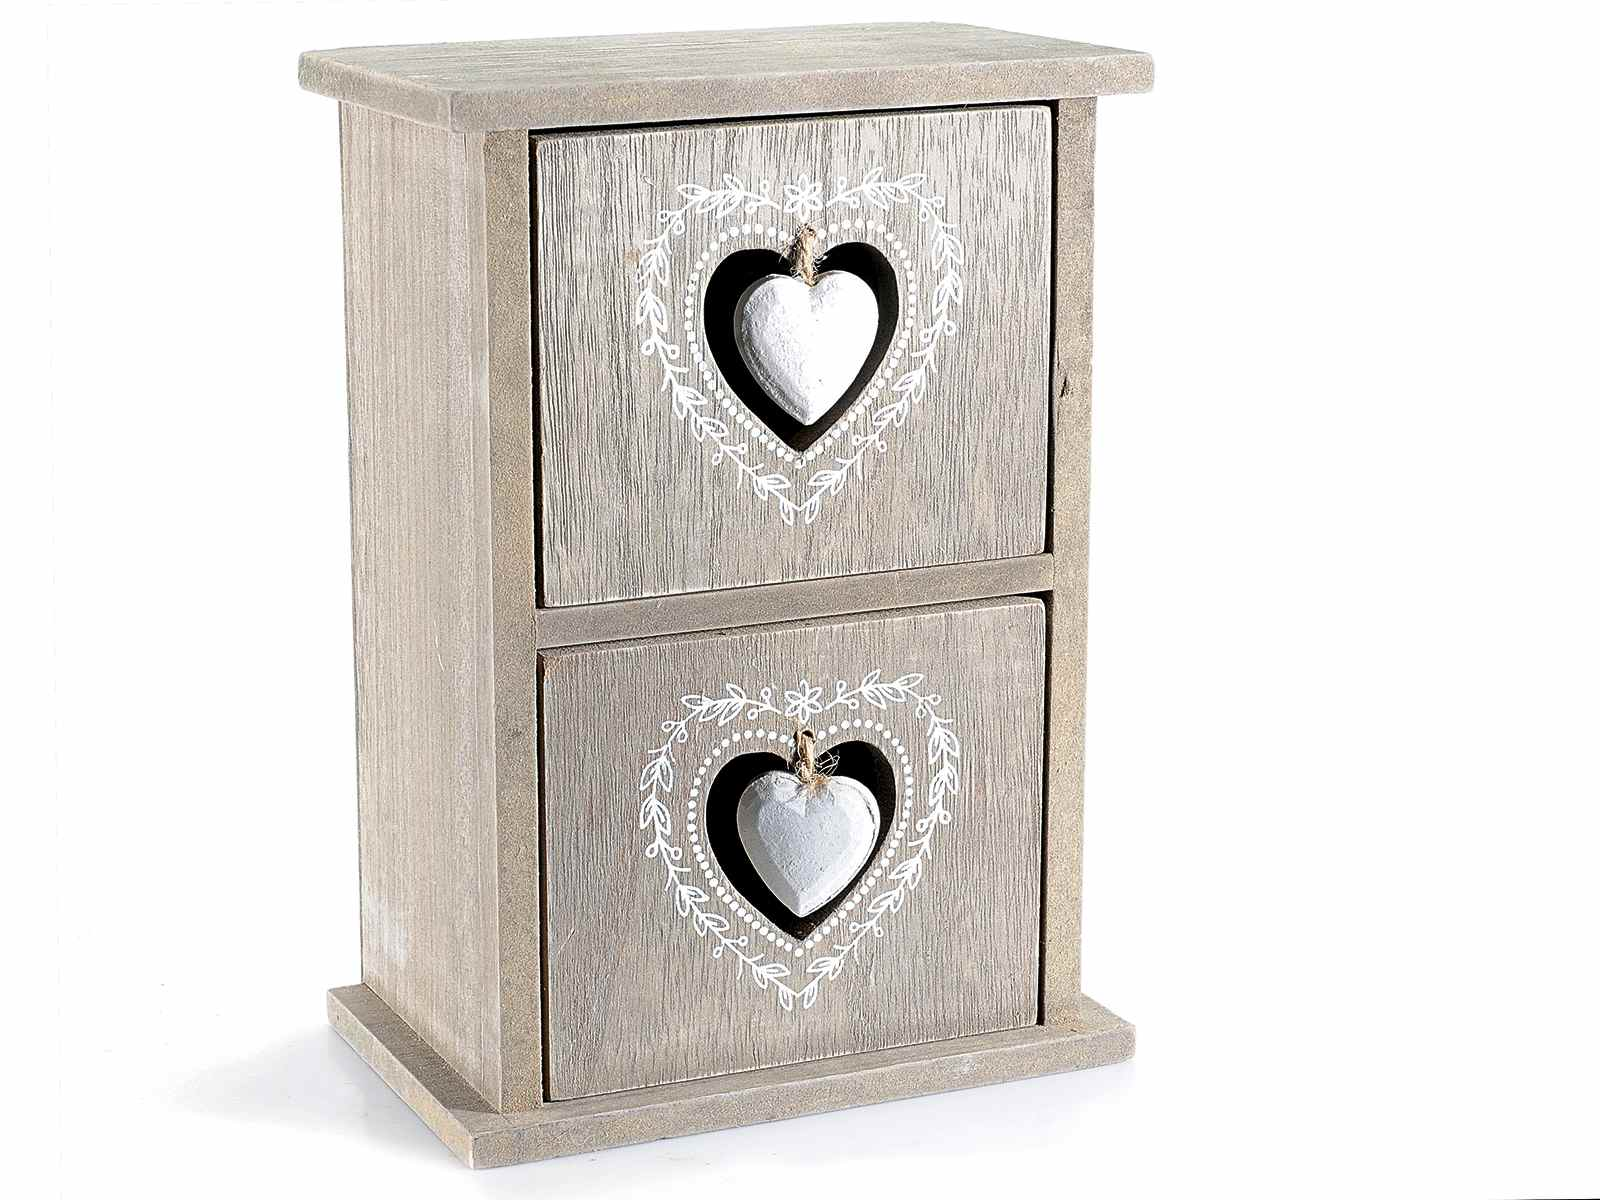 petit chiffonnier en bois avec 2 tiroirs avec coeur d co art from italy. Black Bedroom Furniture Sets. Home Design Ideas